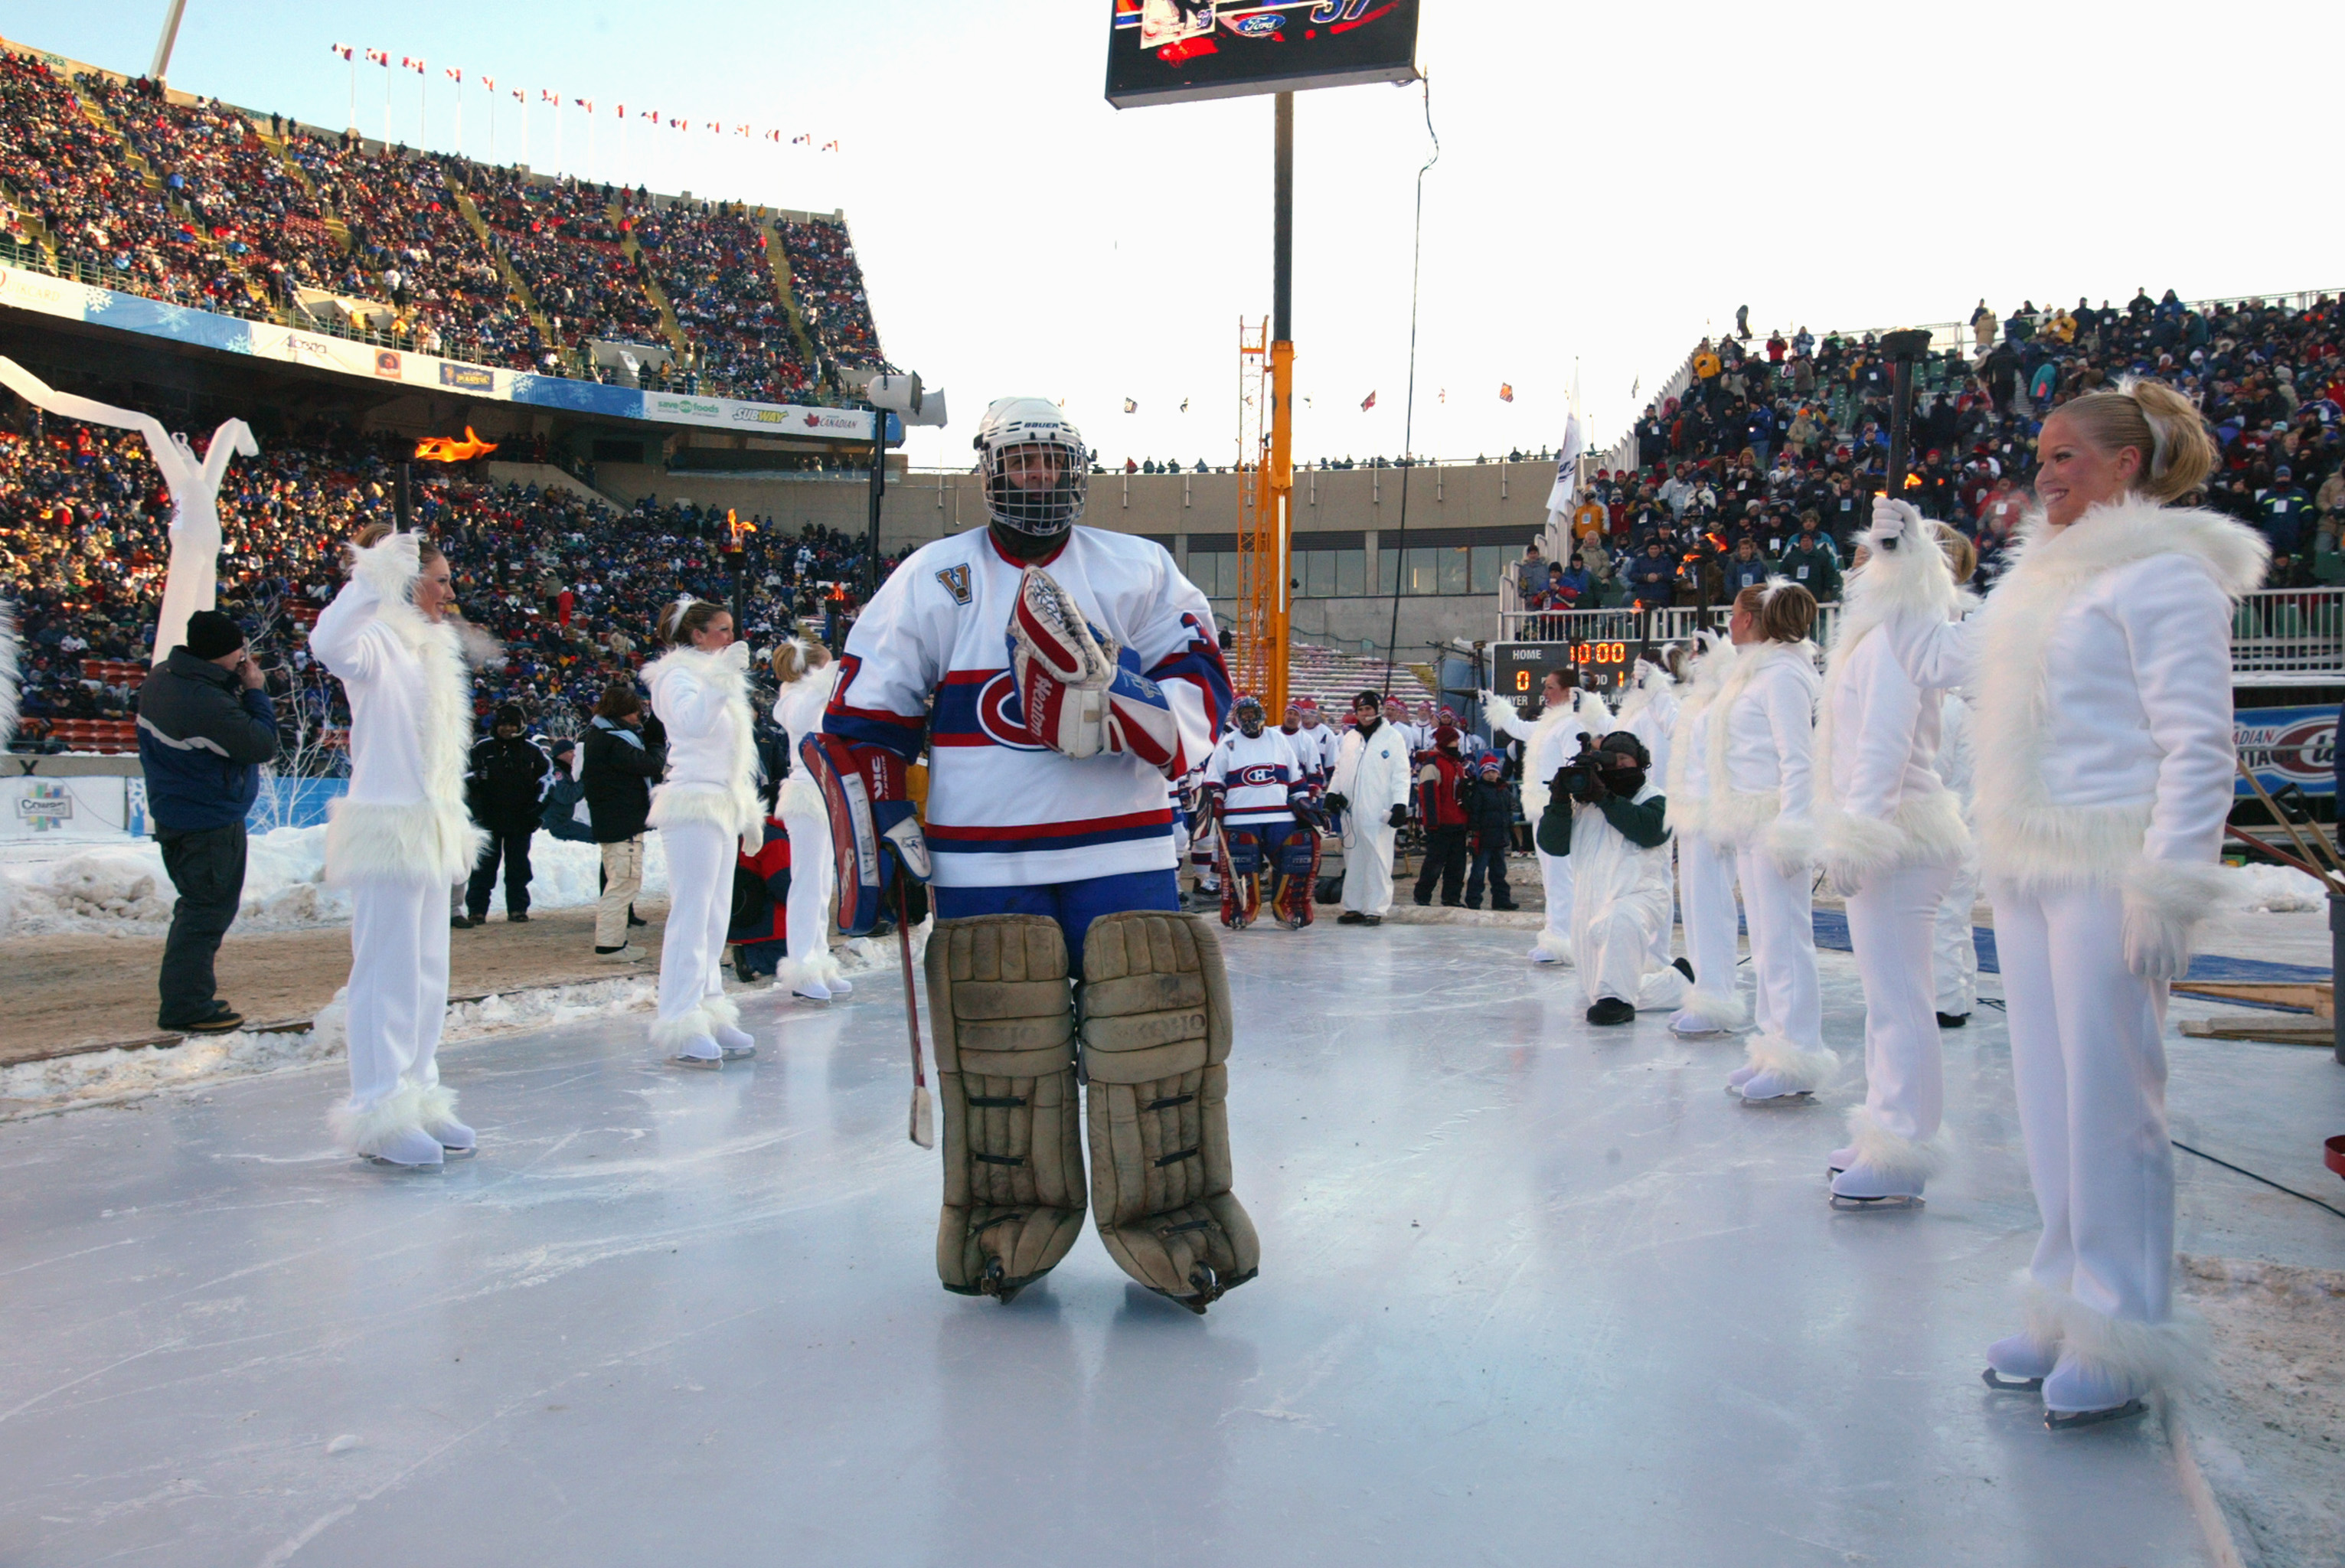 EDMONTON, CANADA - NOVEMBER 22:  Goaltender Steve Penney #17 of the Montreal Canadiens skates onto the ice surface prior to taking on the Edmonton Oilers in the Molson Canadien Heritage Classic Megastars Game on November 22, 2003 at Commonwealth Stadium i